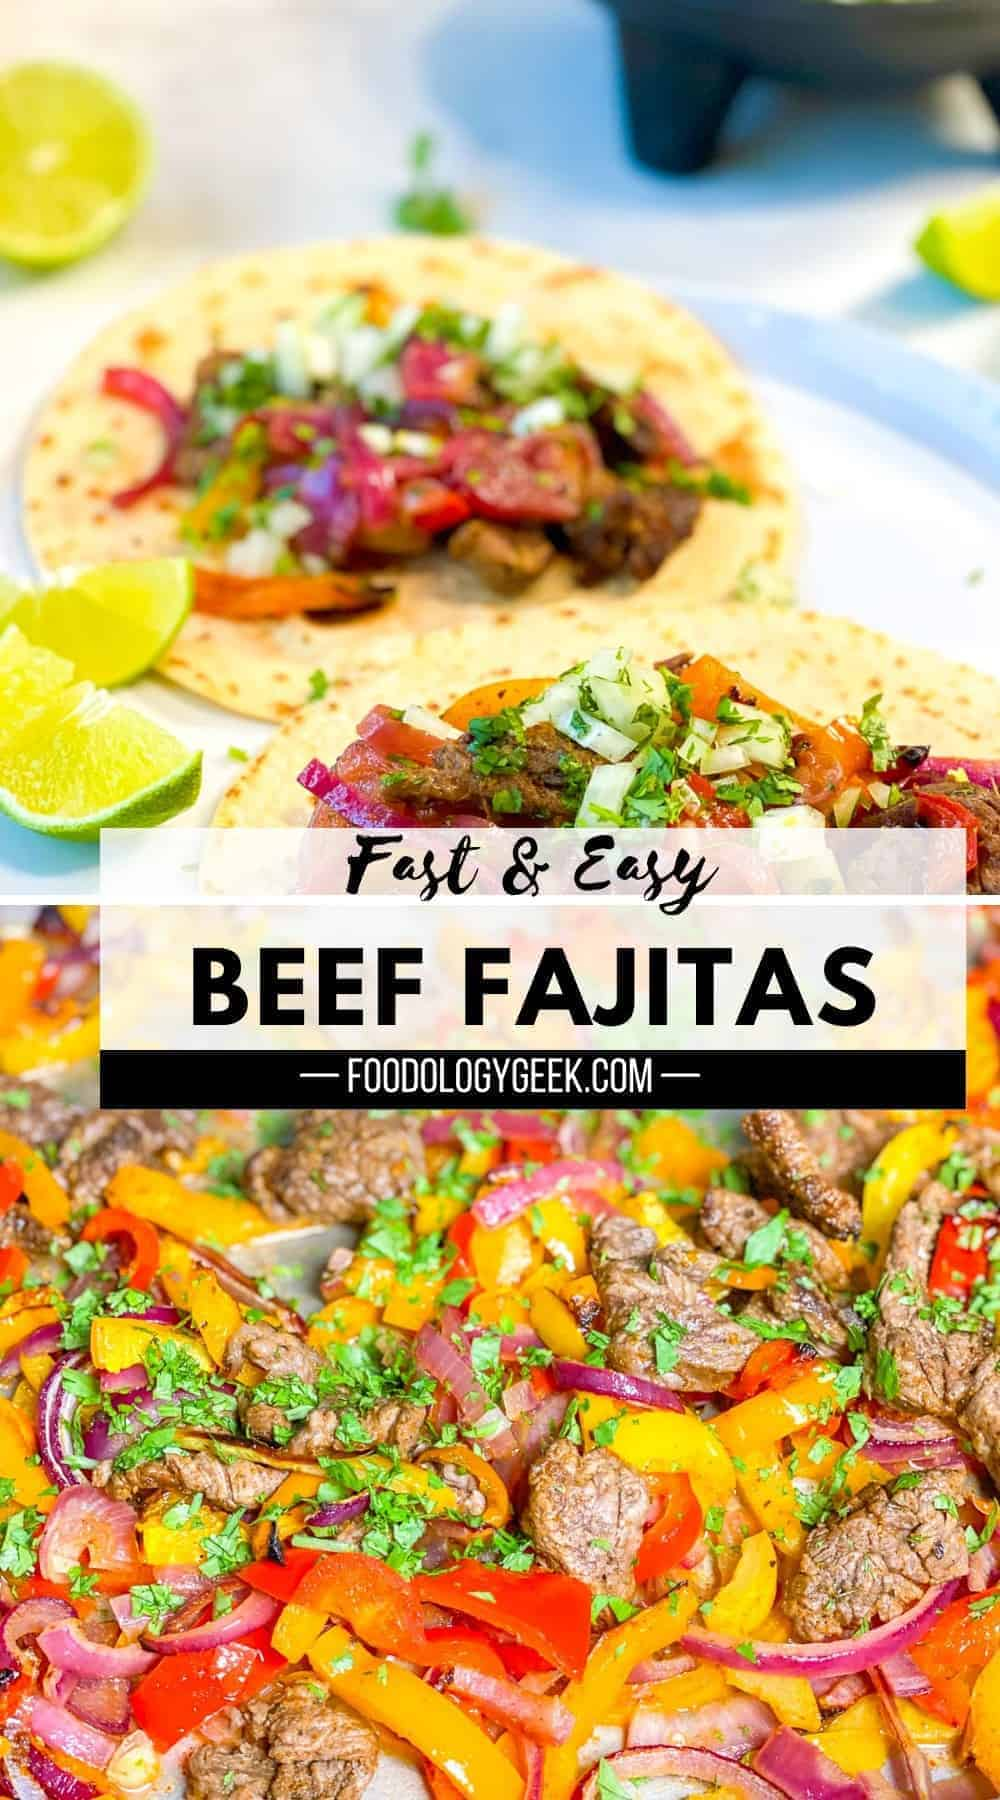 Steak Fajitas are arguably one of the best fast and easy dinner recipes. High protein, full of veggies, and tons of flavor, this recipe is sure to make everyone happy. Only 5 ingredients and 10 minutes of prep time.